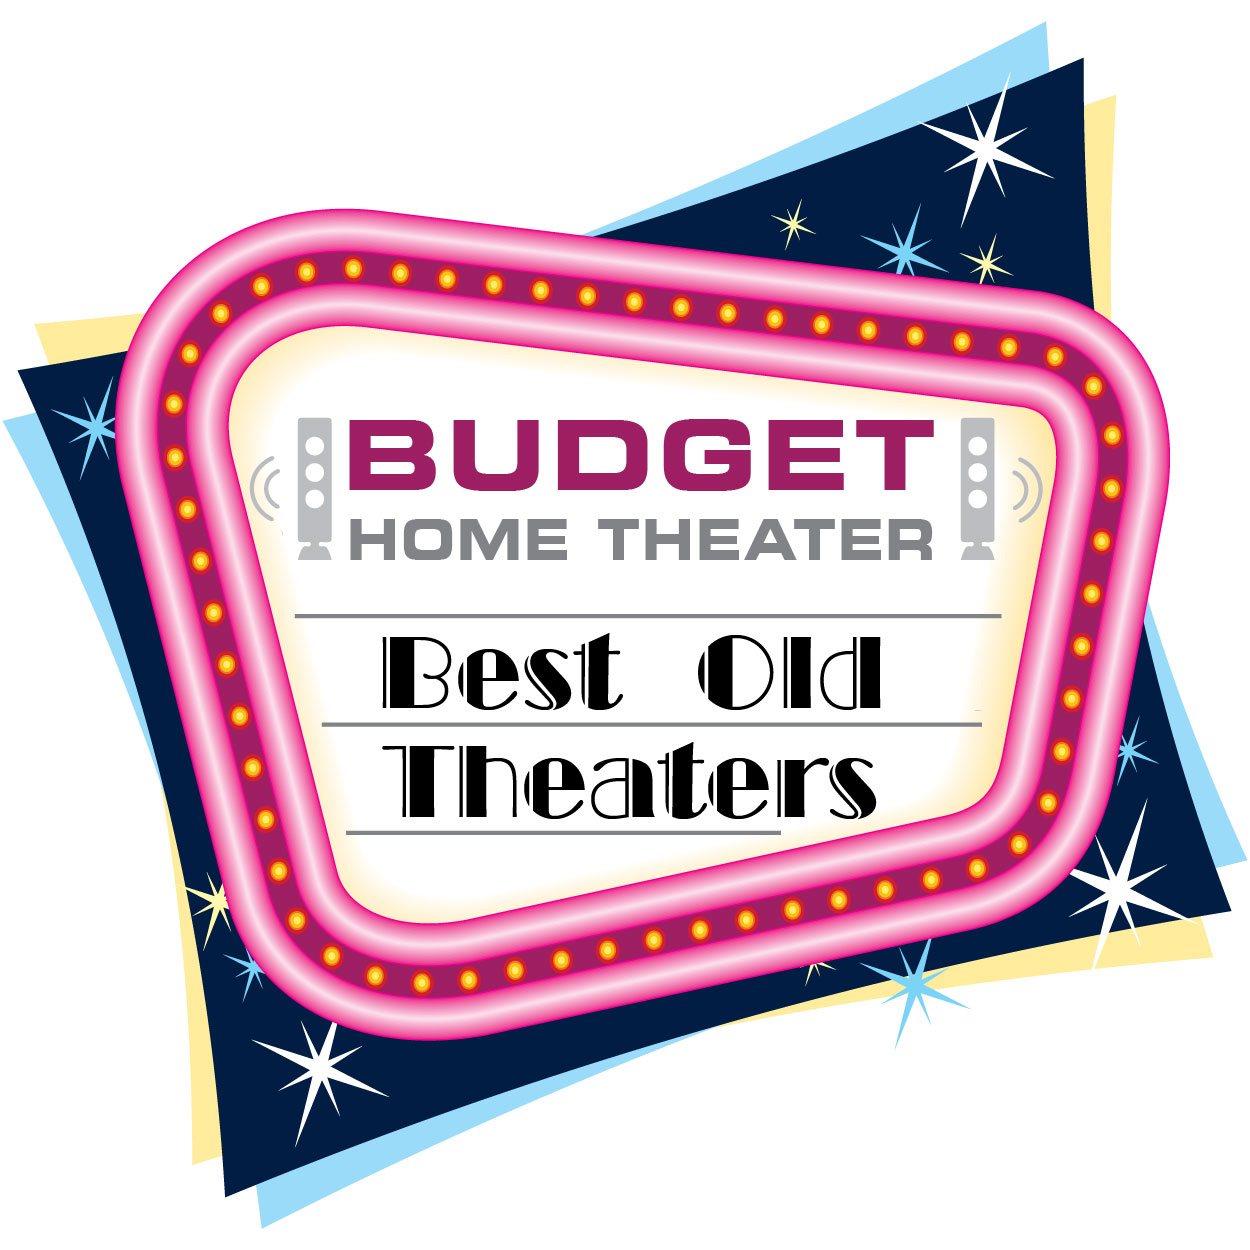 50 Towns With the Most Majestic Old Theaters - Budget Home Theater